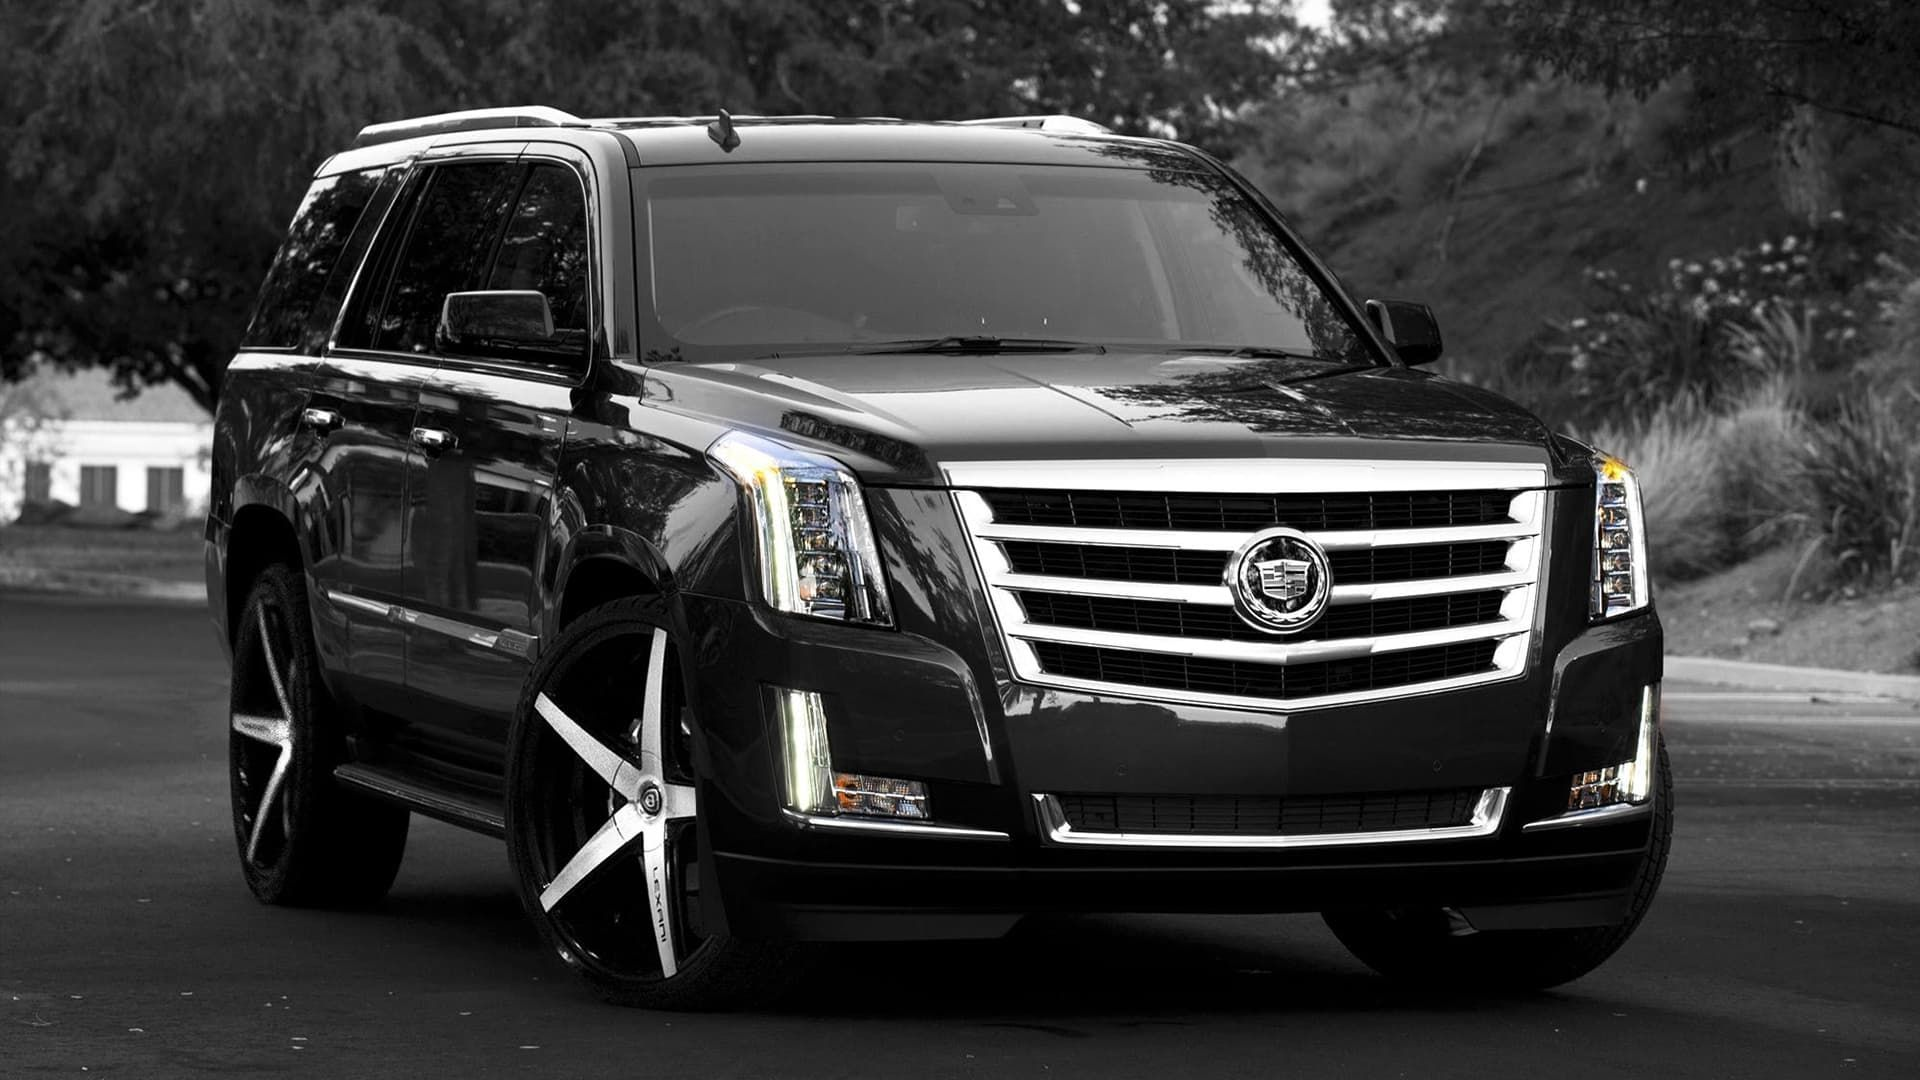 My Favorite Suv Black Escalade